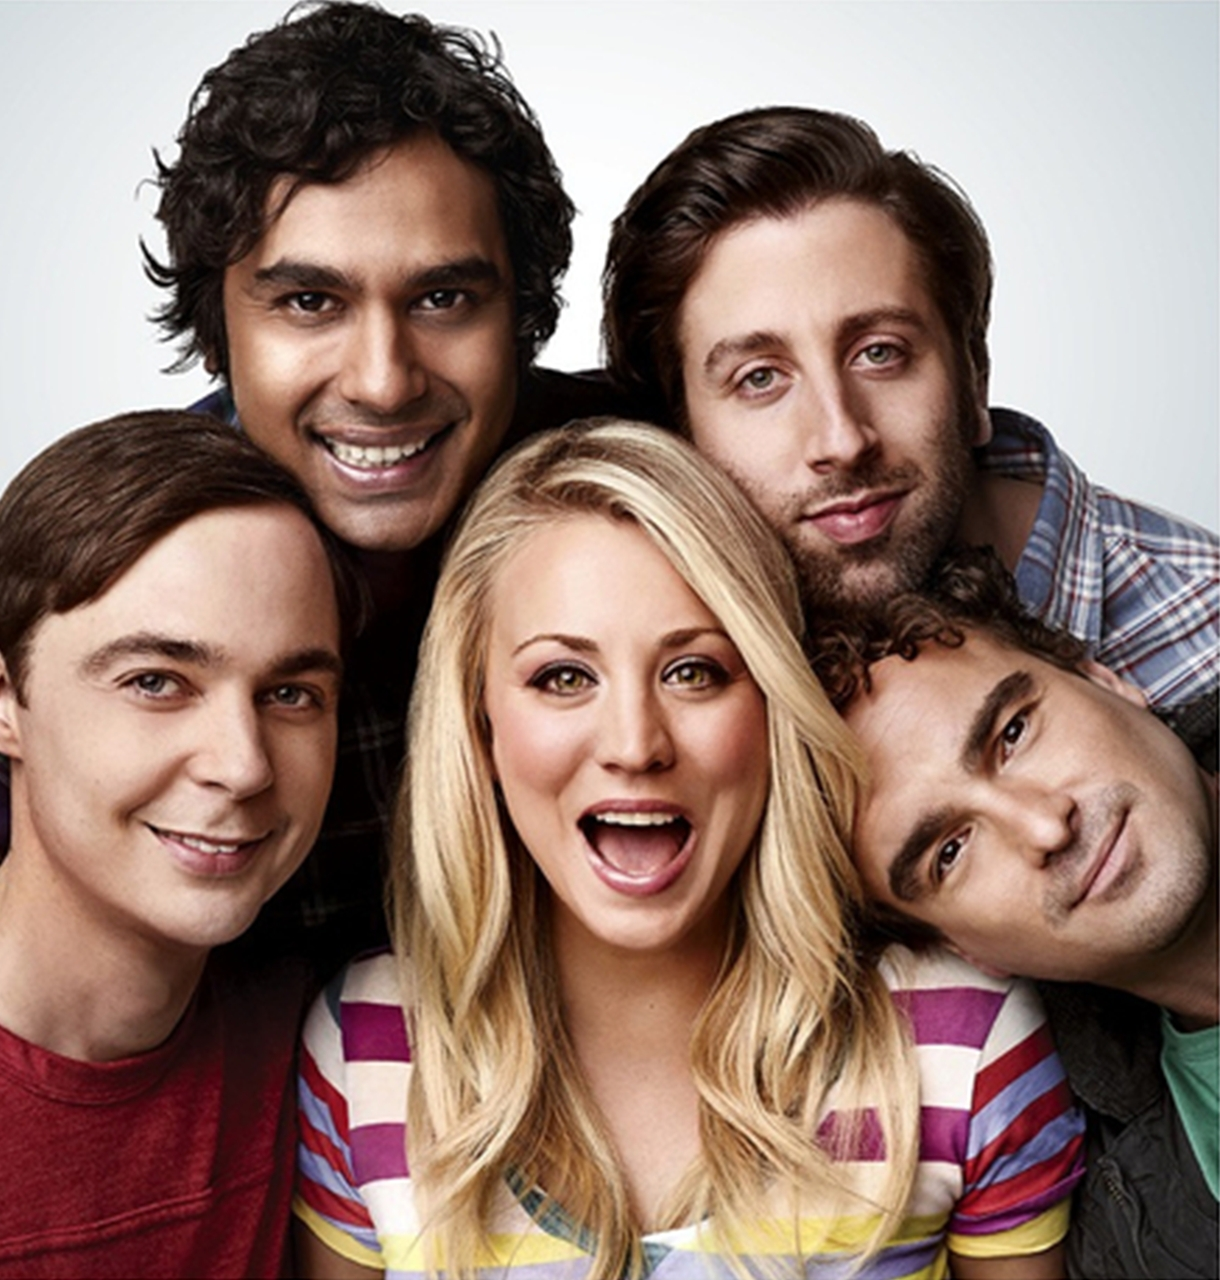 The Big Bagn Theory Tbbt The Big Bang Theory Photo 32270861 Fanpop